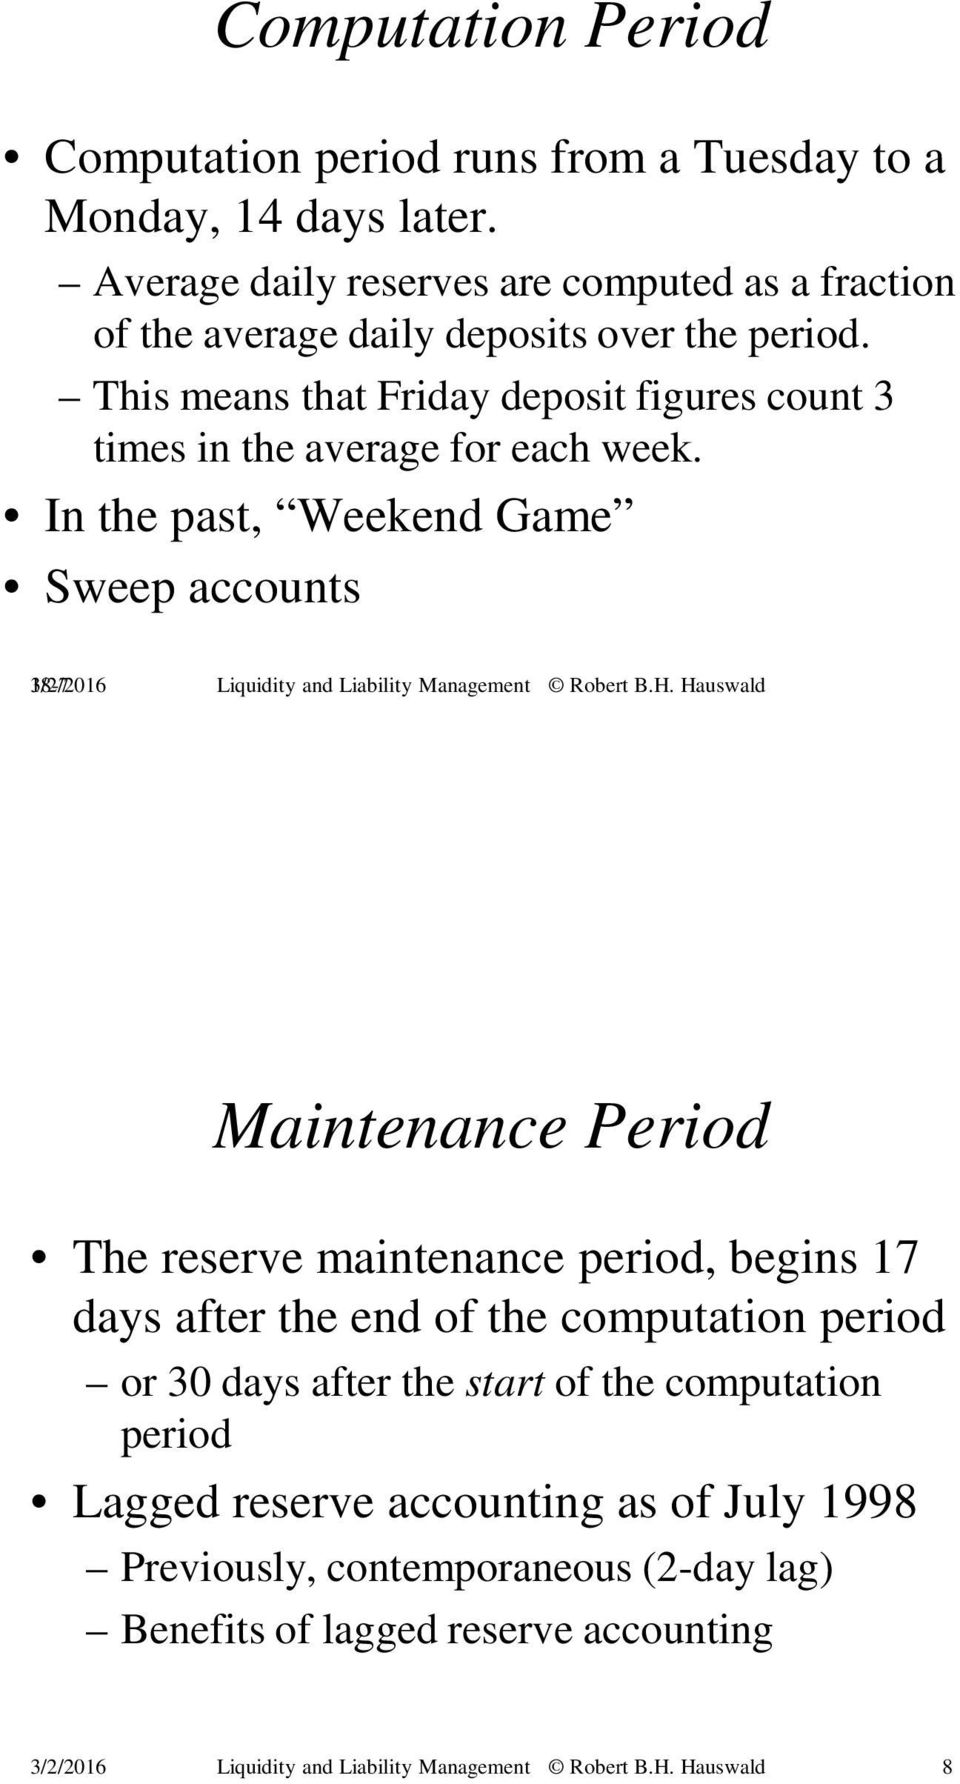 This means that Friday deposit figures count 3 times in the average for each week.